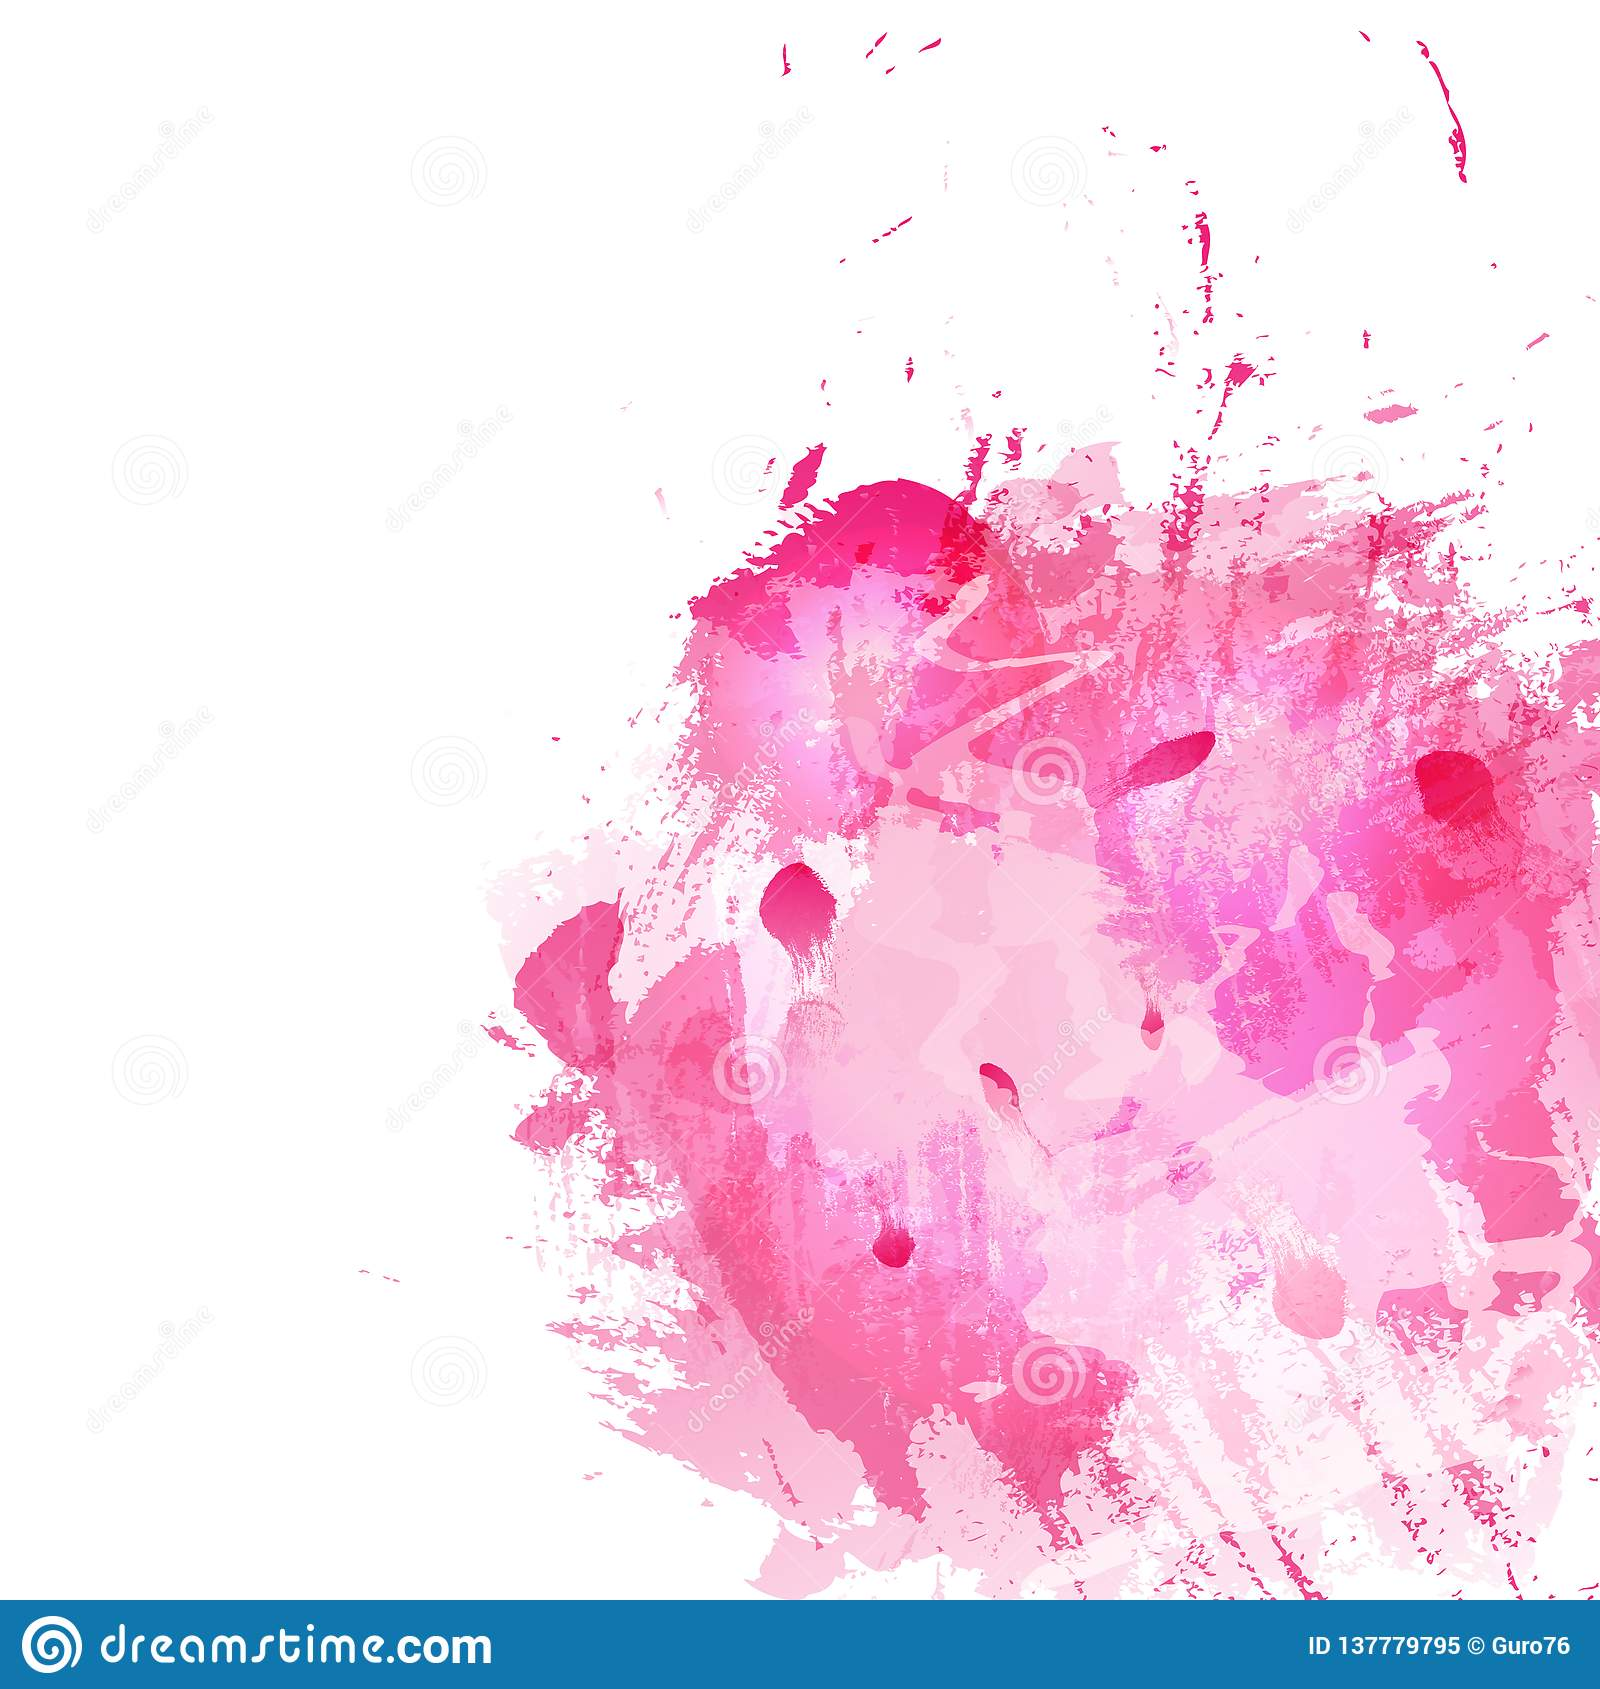 Abstract background with pink spots and splashes of paint